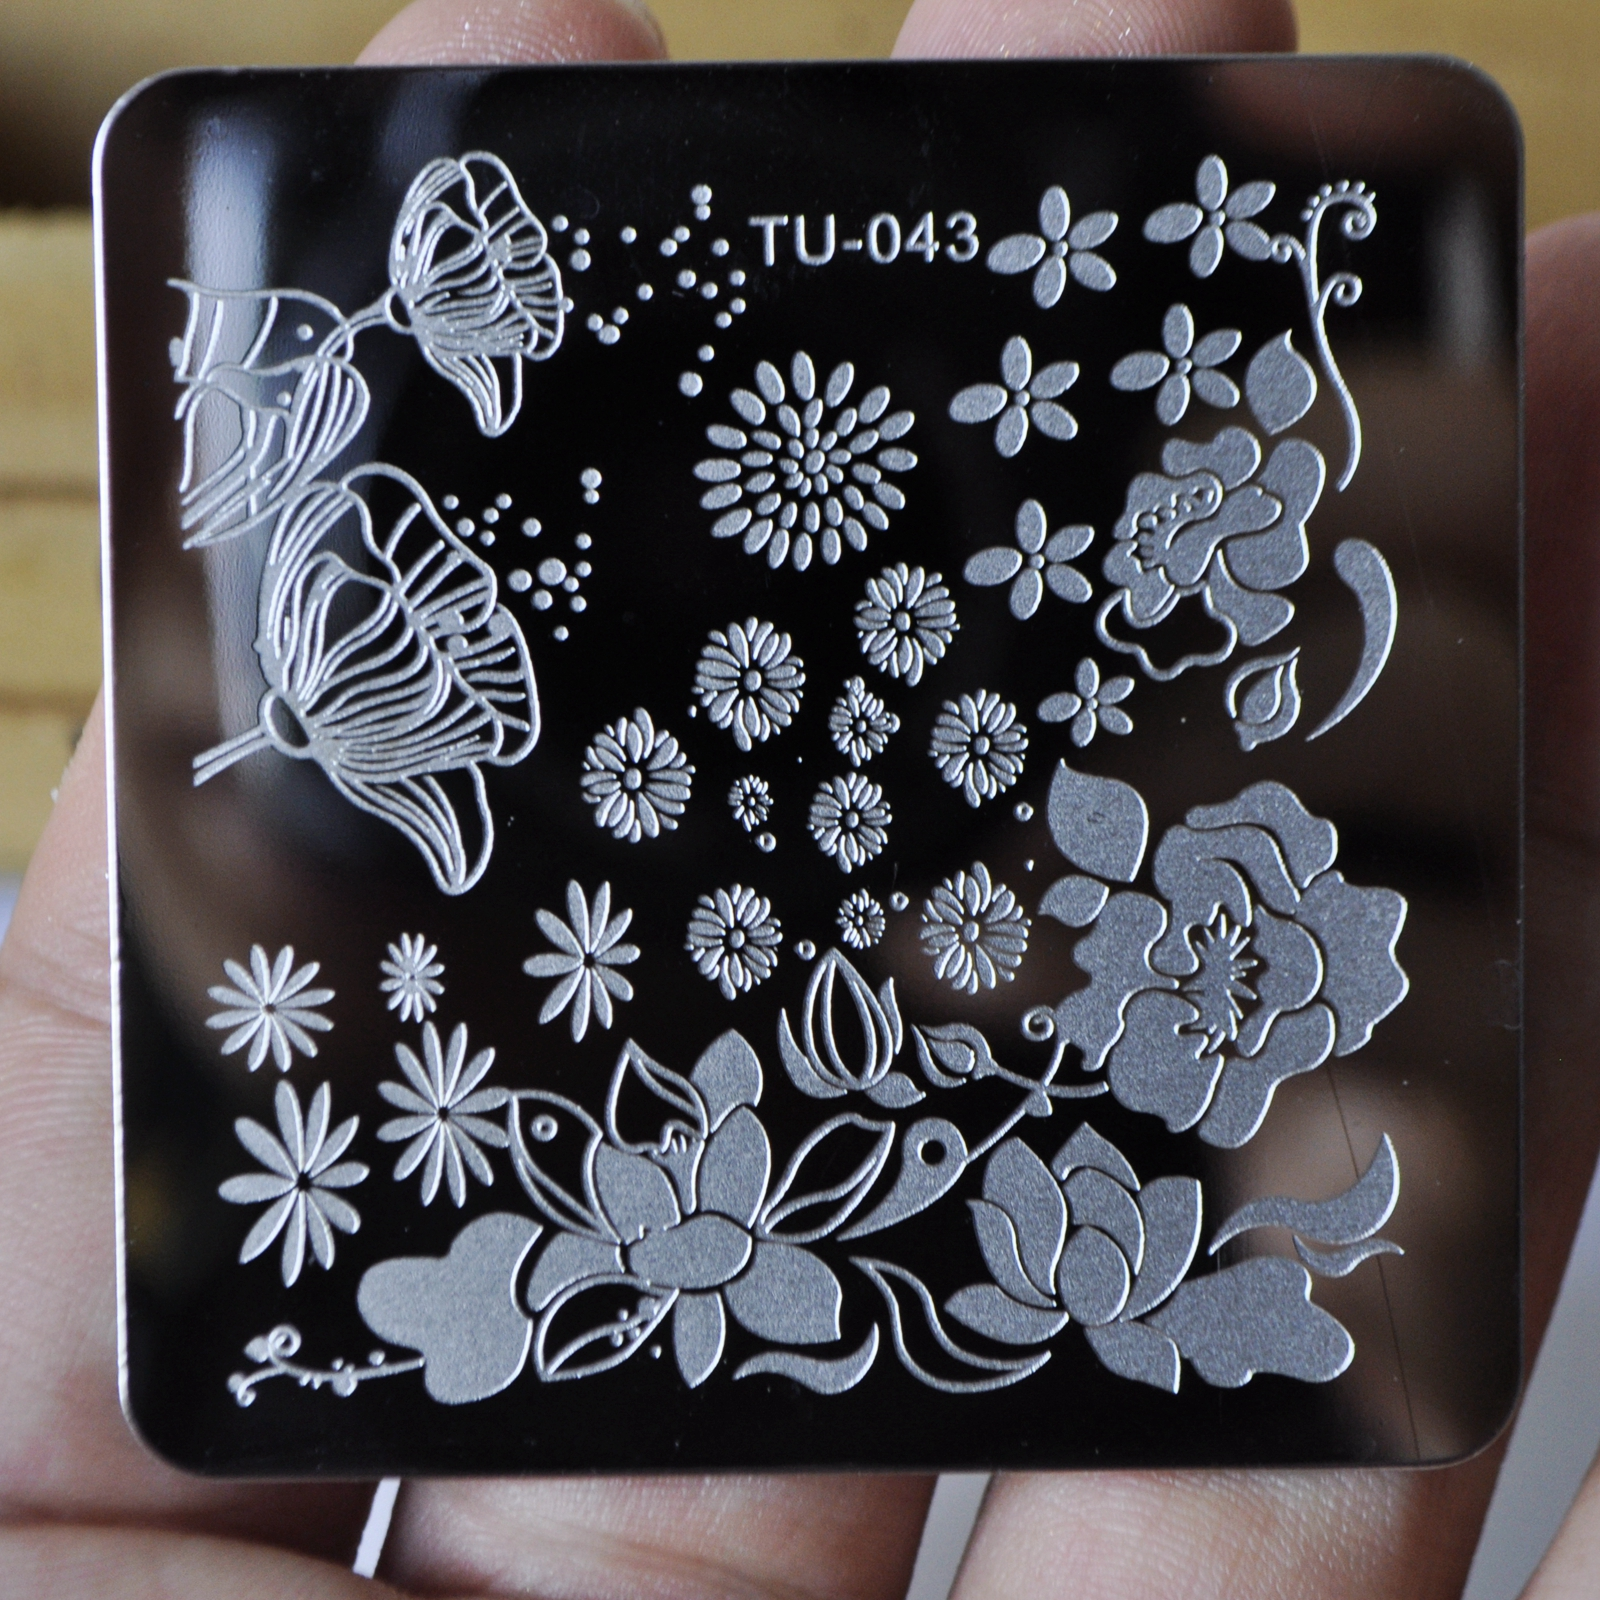 Online get cheap lotus nail plates aliexpress alibaba group charming spring nail art stamp template image plate daisy lotus flower stencils stainless steel nails stamping dhlflorist Image collections